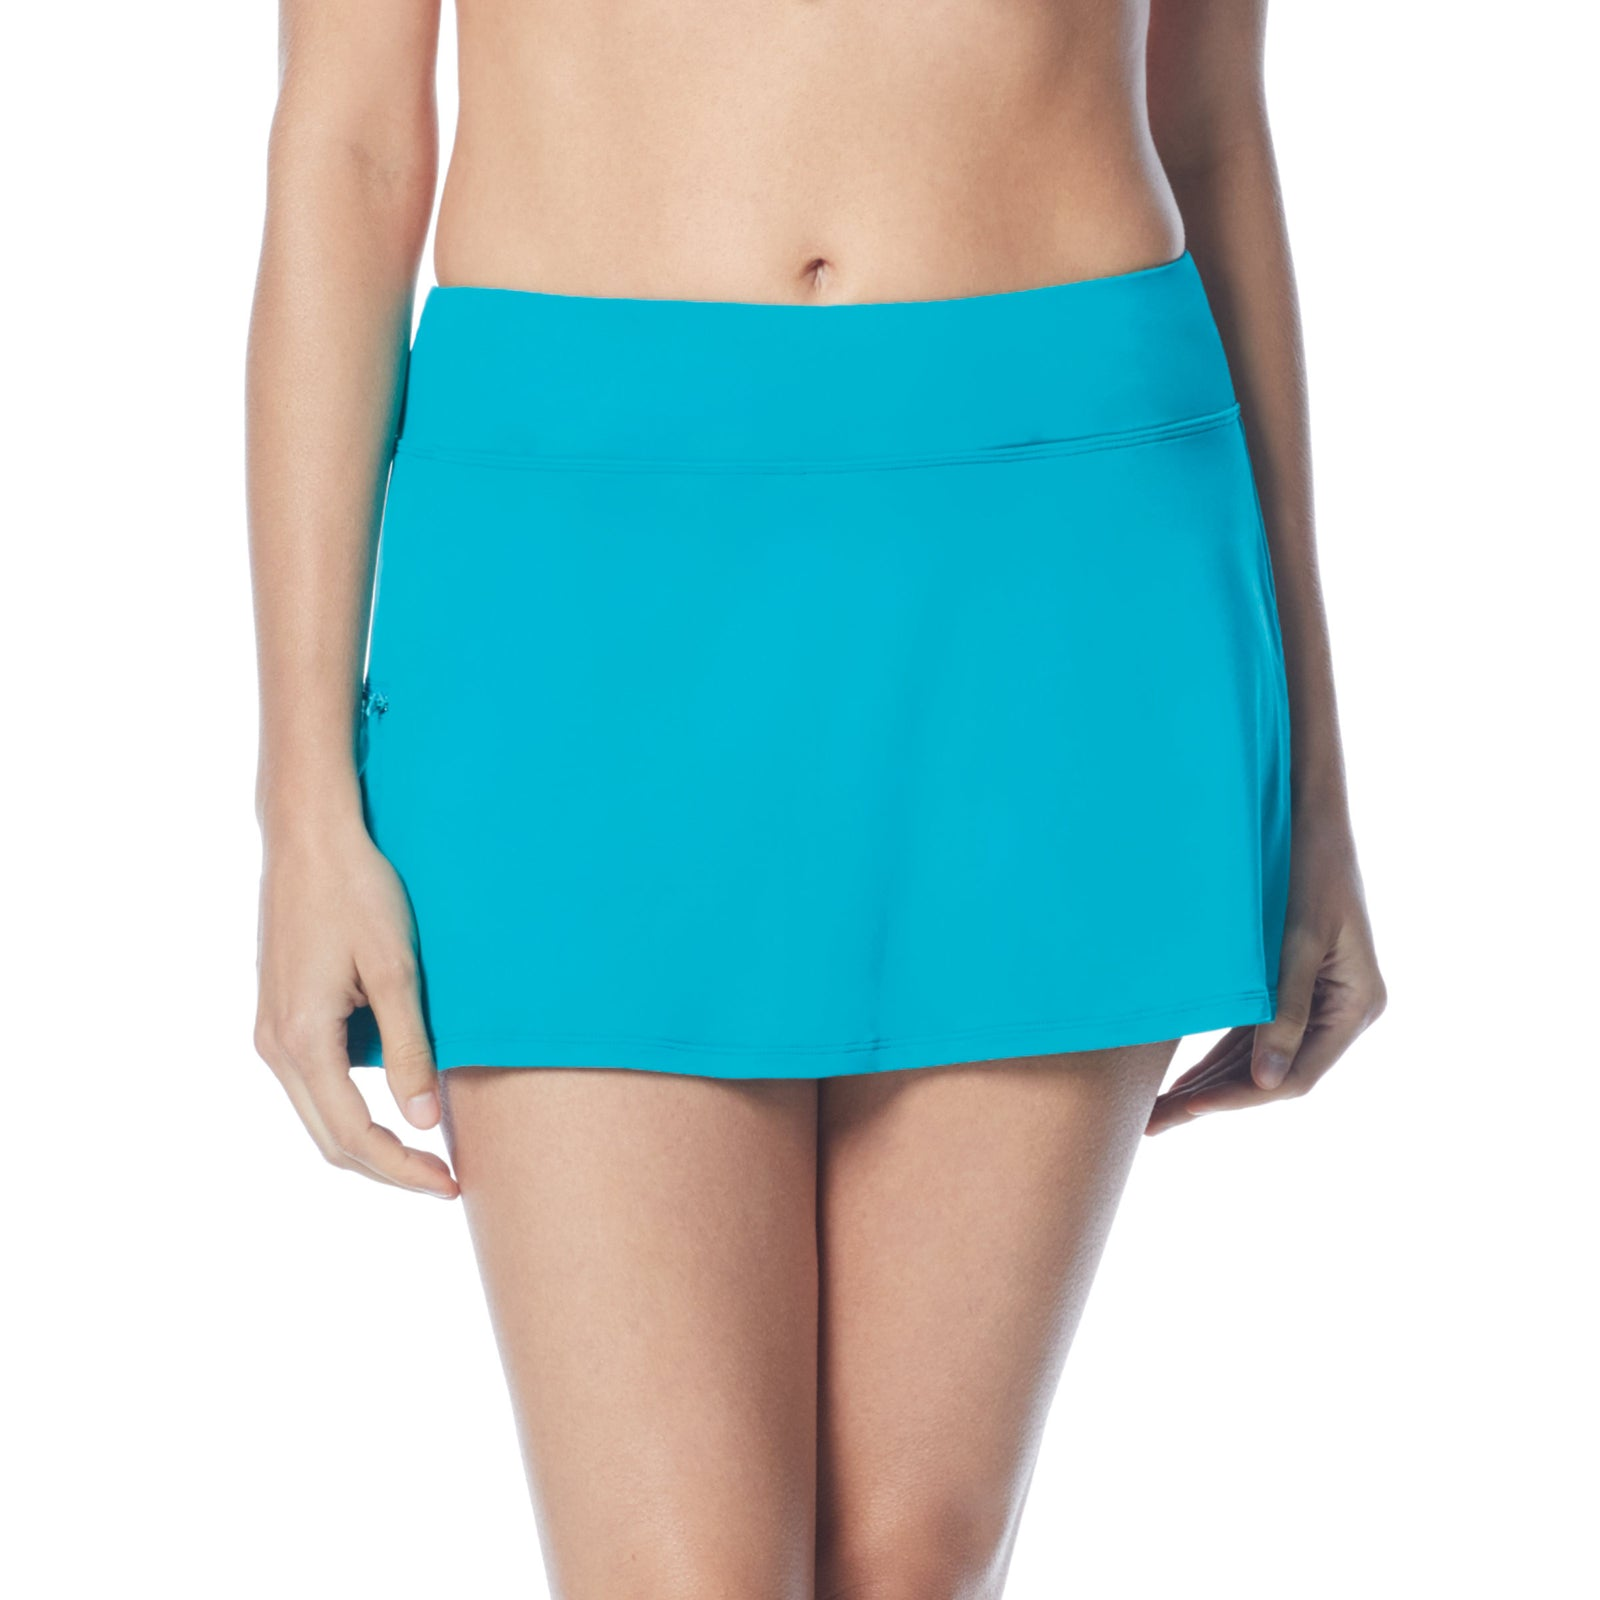 Swim Skort Boy Shorts Attached Underneath Full Coverage Zippered Pocke 50+ UPF 4 Way Stretch Soft Touch Comfort Fabric with Lycra® Chlorine Resistant Fabric Content: 85% Nylon/15% Xtra Life Lycra® Hand Wash Cold, Line Dry turquoise